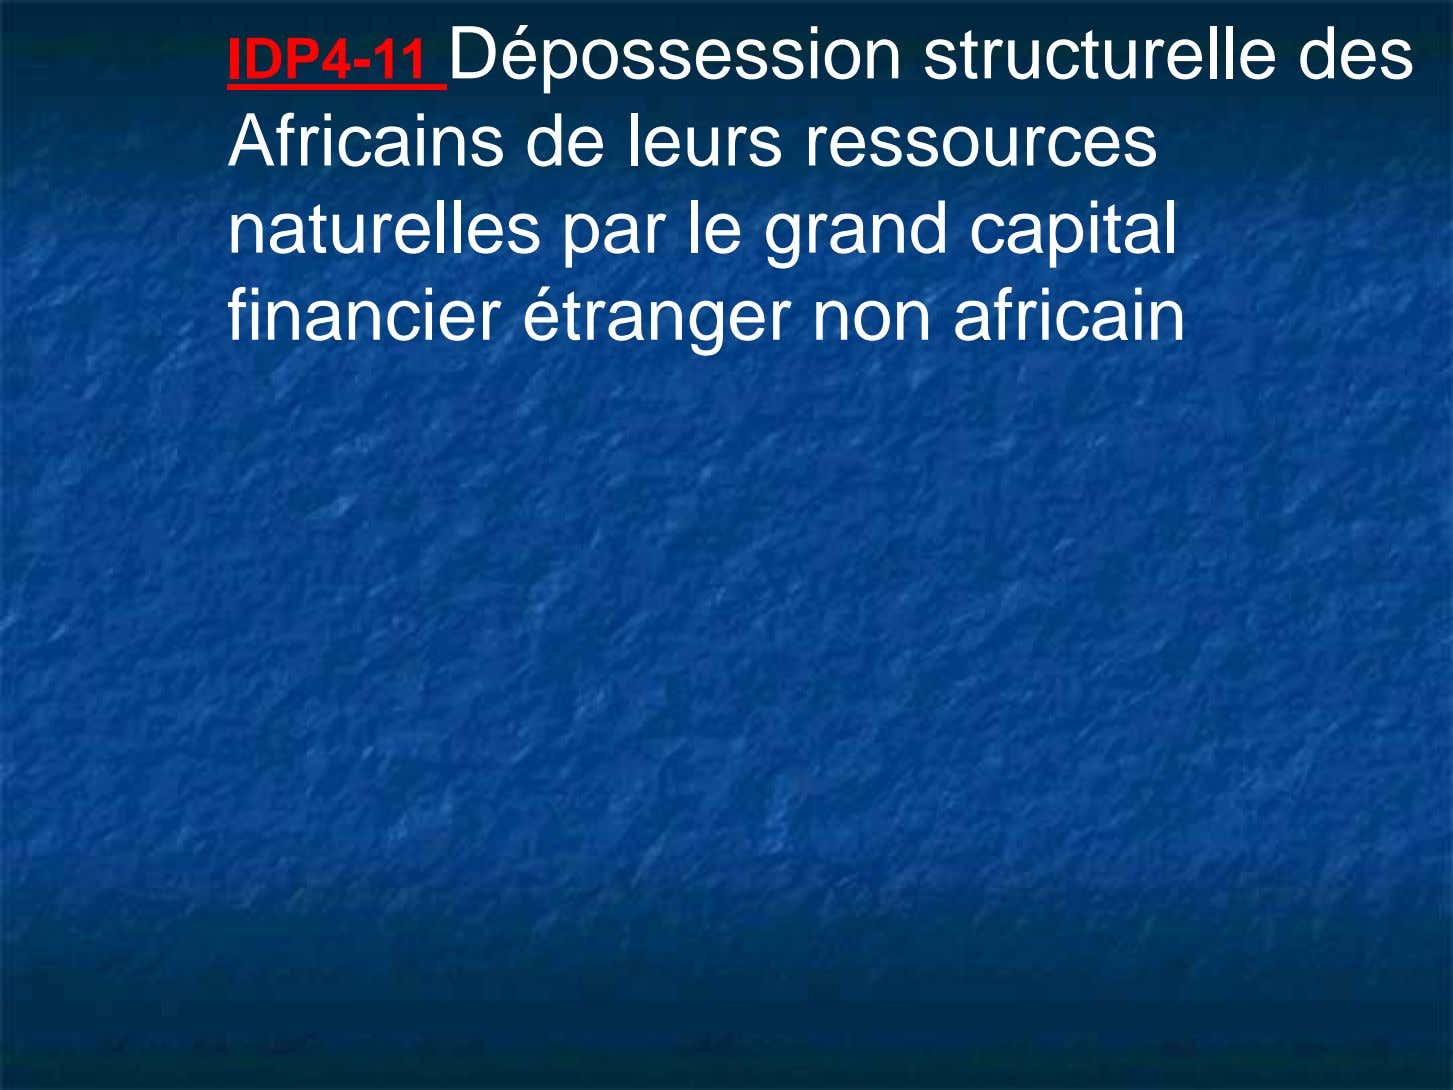 IDP4-11 Dépossession structurelle des Africains de leurs ressources naturelles par le grand capital financier